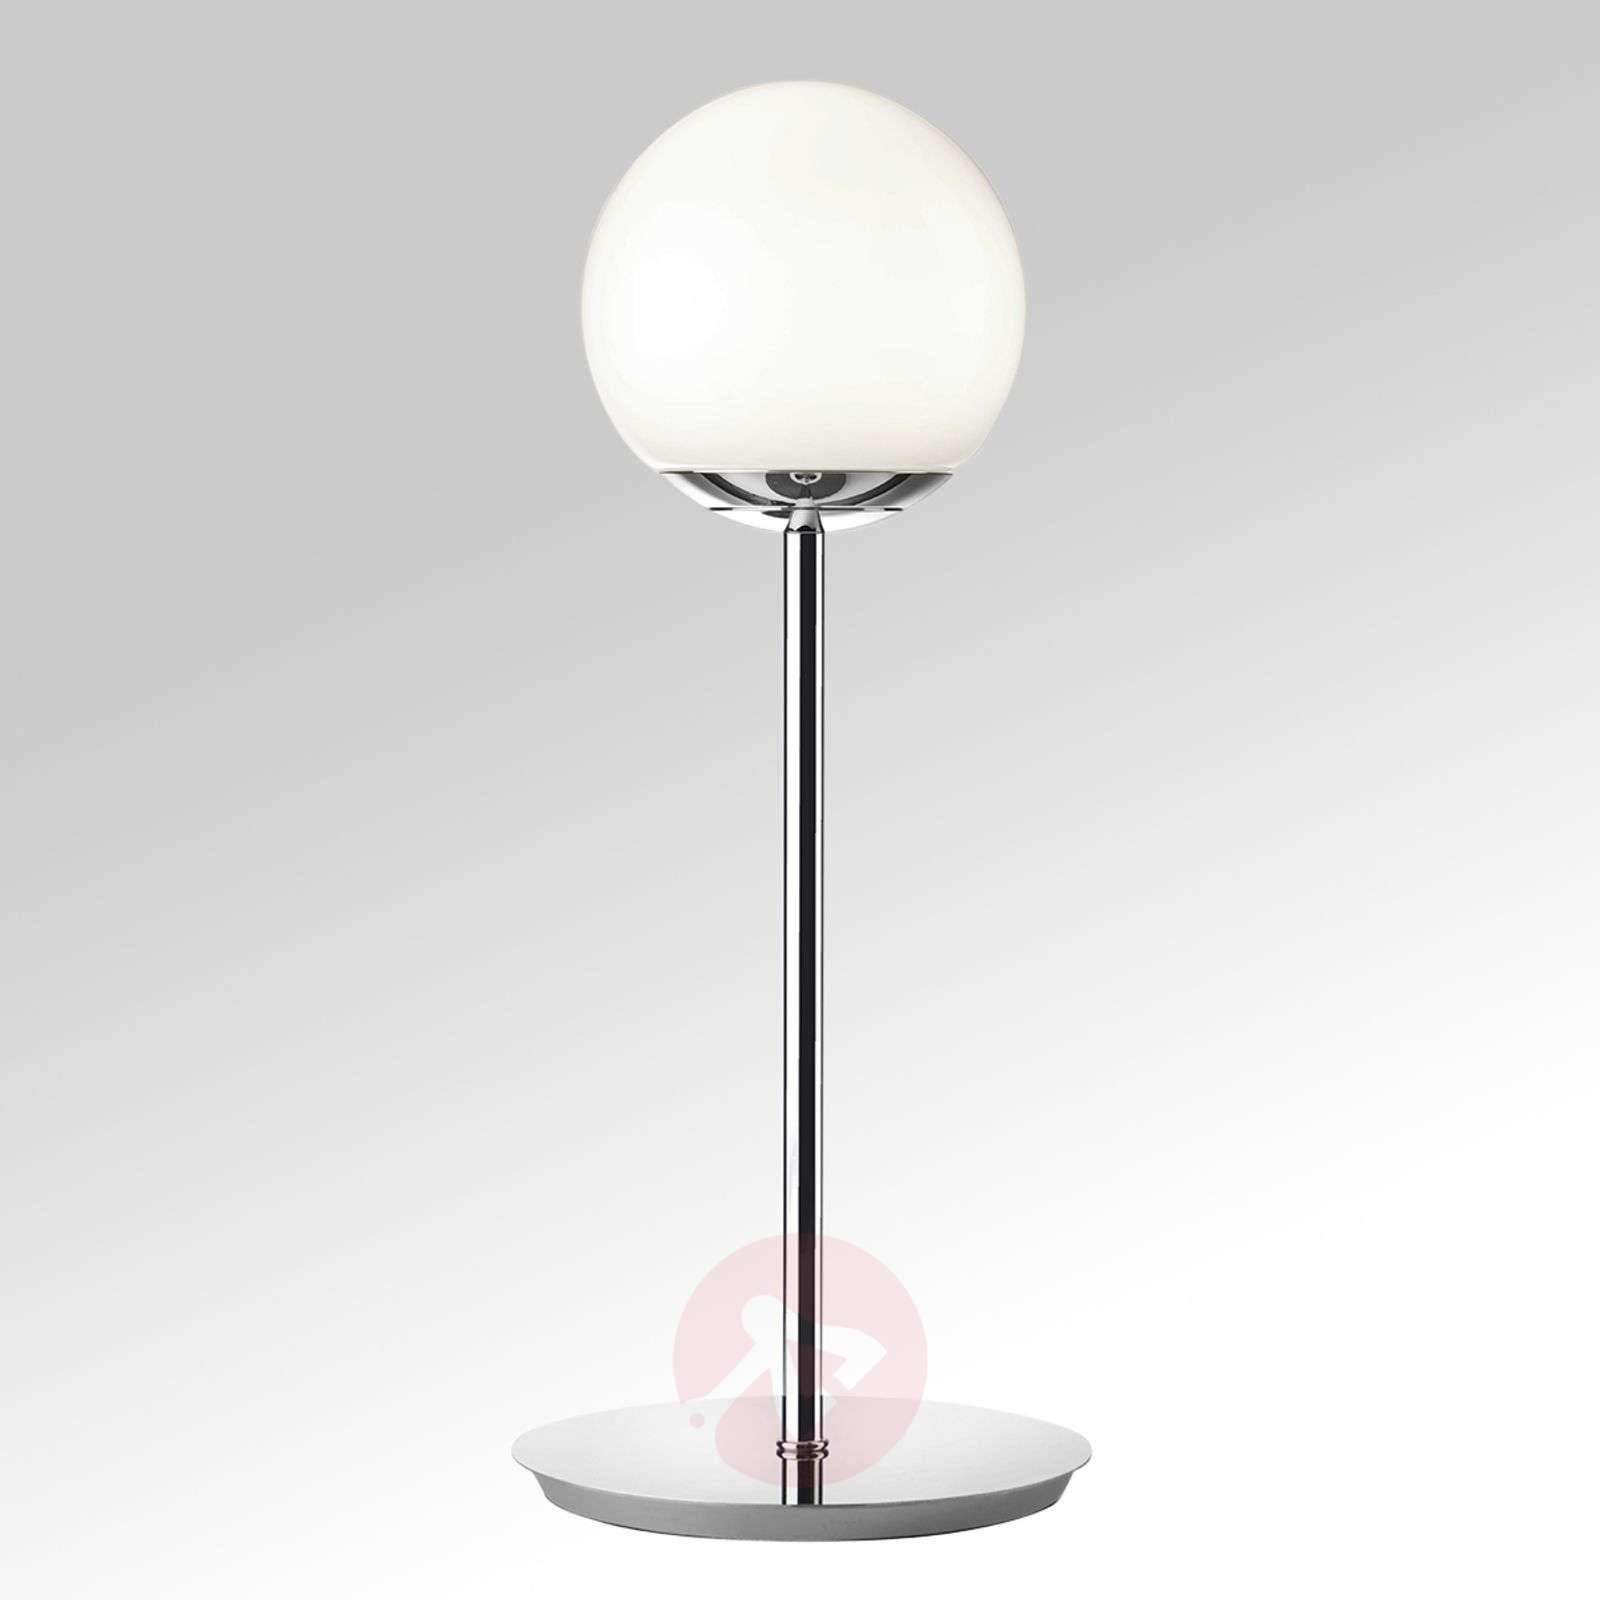 Puppi LED table lamp, spherical glass lampshade-8507634-01